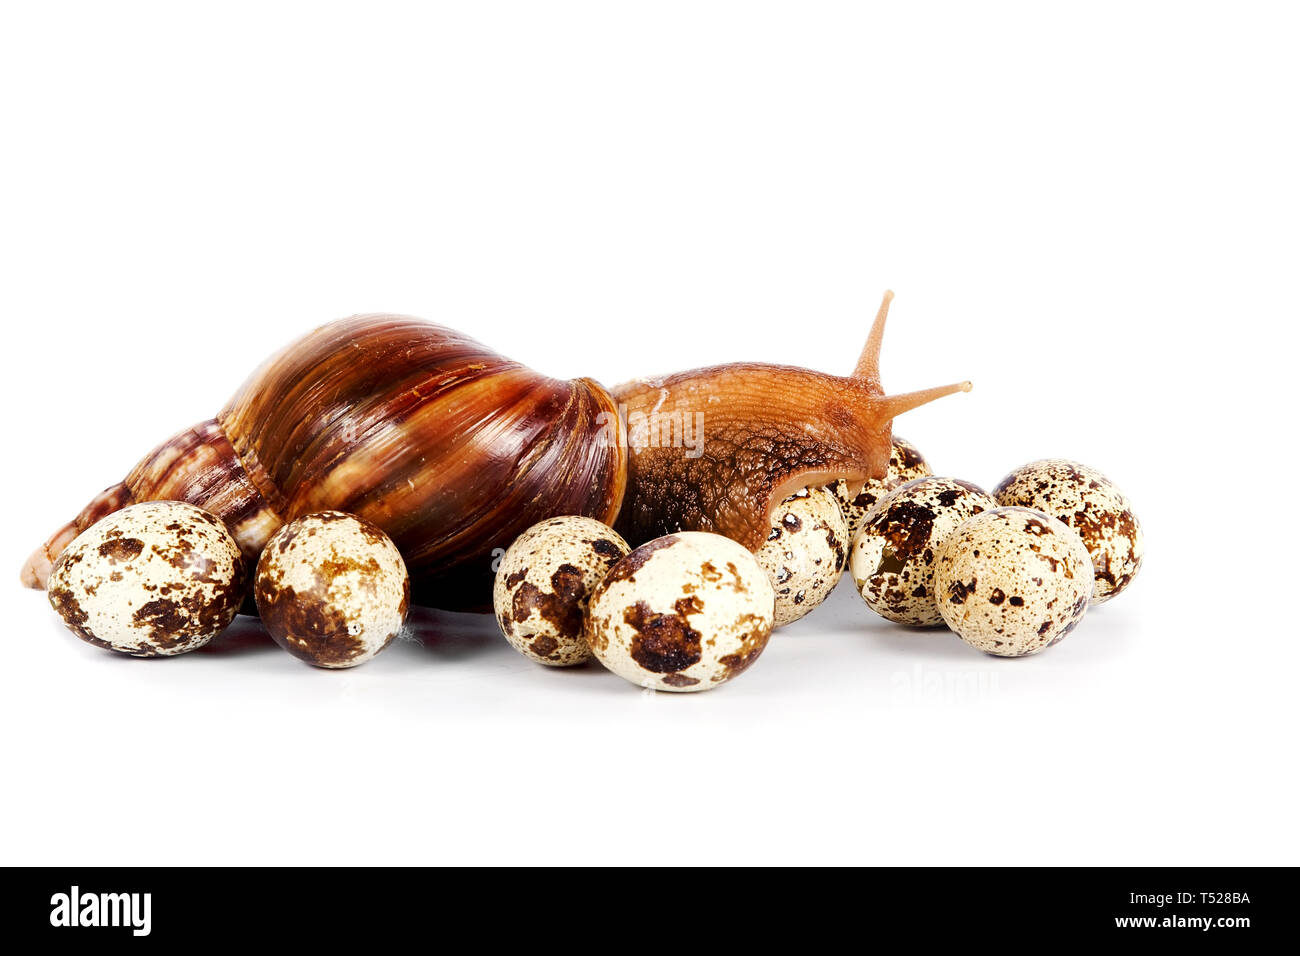 The snail creeps on quail eggs on a white background - Stock Image